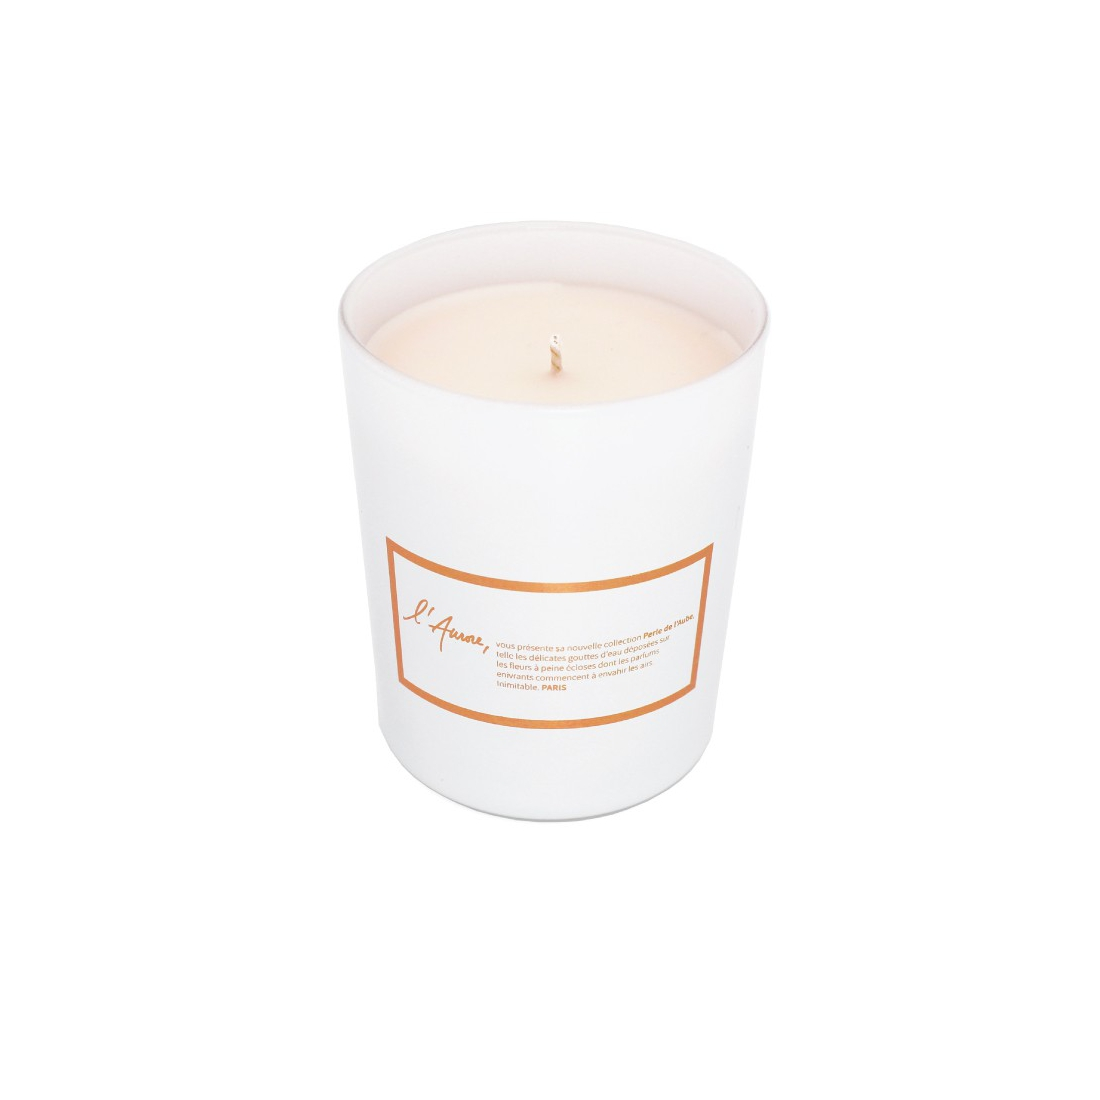 Scented candle FRAICHEUR D'ASIE (cotton flower and lotus)